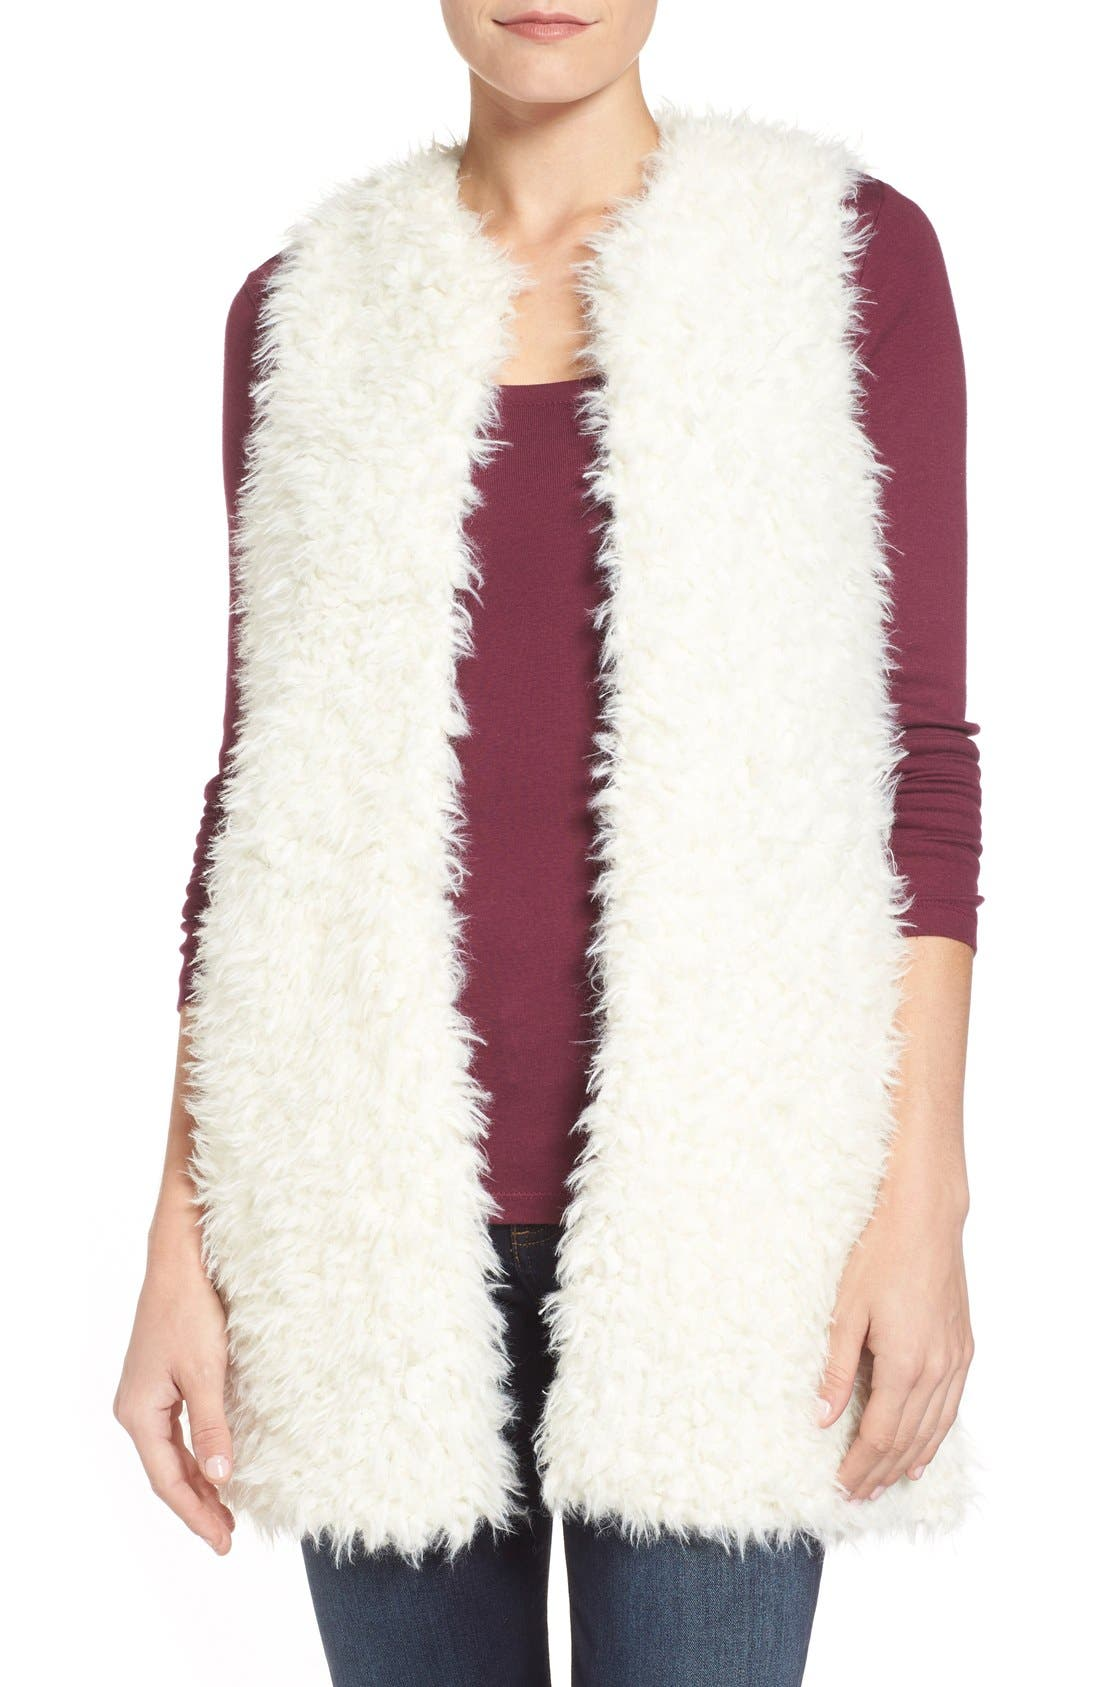 Alternate Image 1 Selected - LAmade 'Mac' Faux Fur Vest